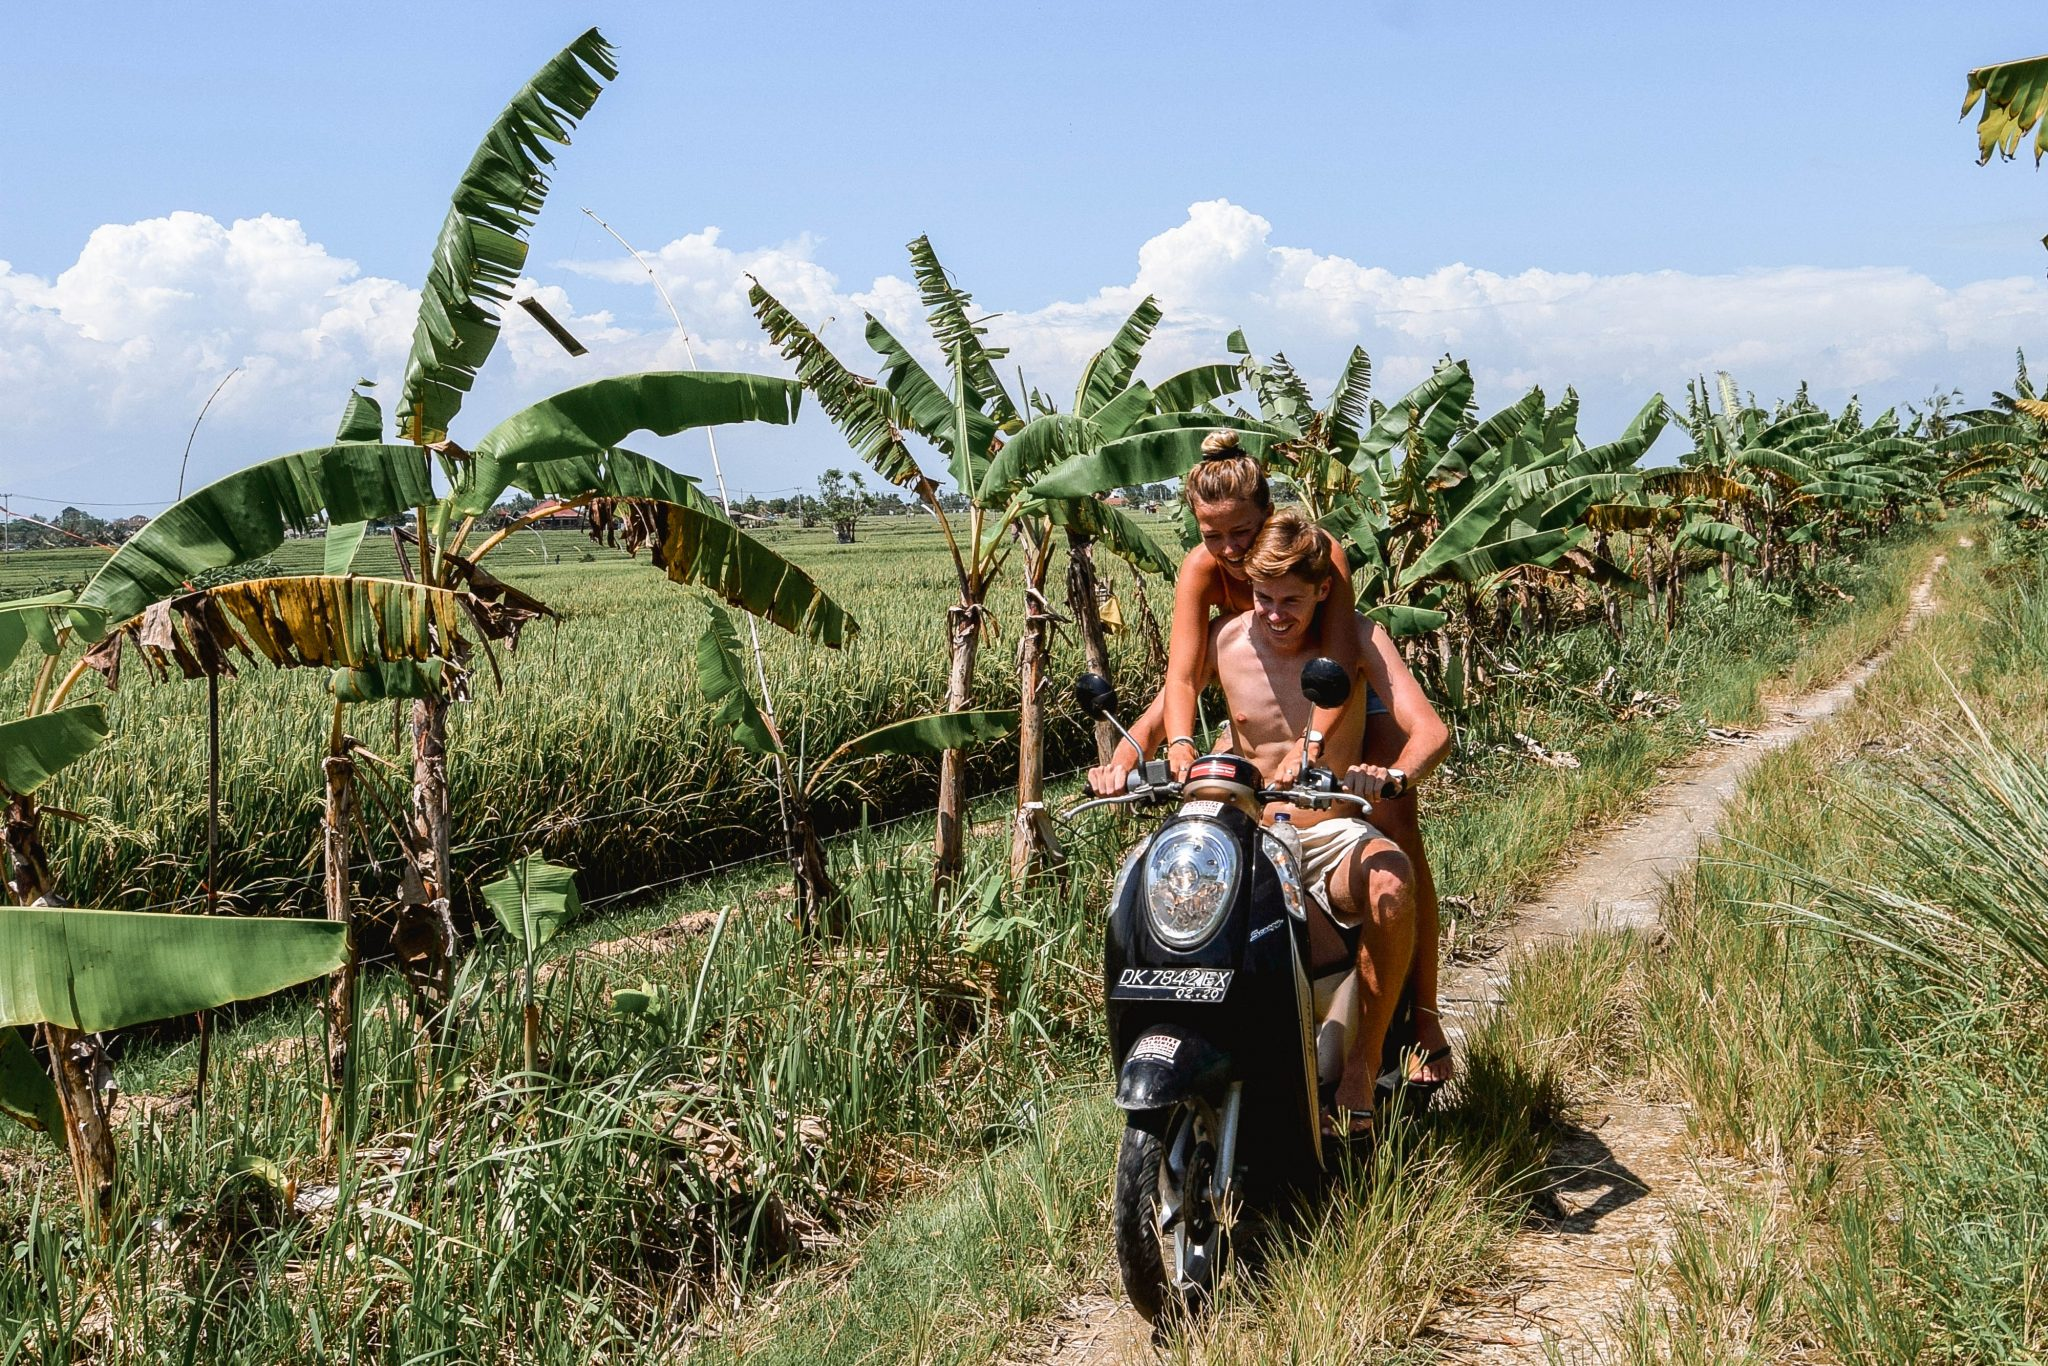 Wanderers & Warriors - Charlie & Lauren UK Travel Couple - Things To Do In Canggu - Our Top 13 Hotspots